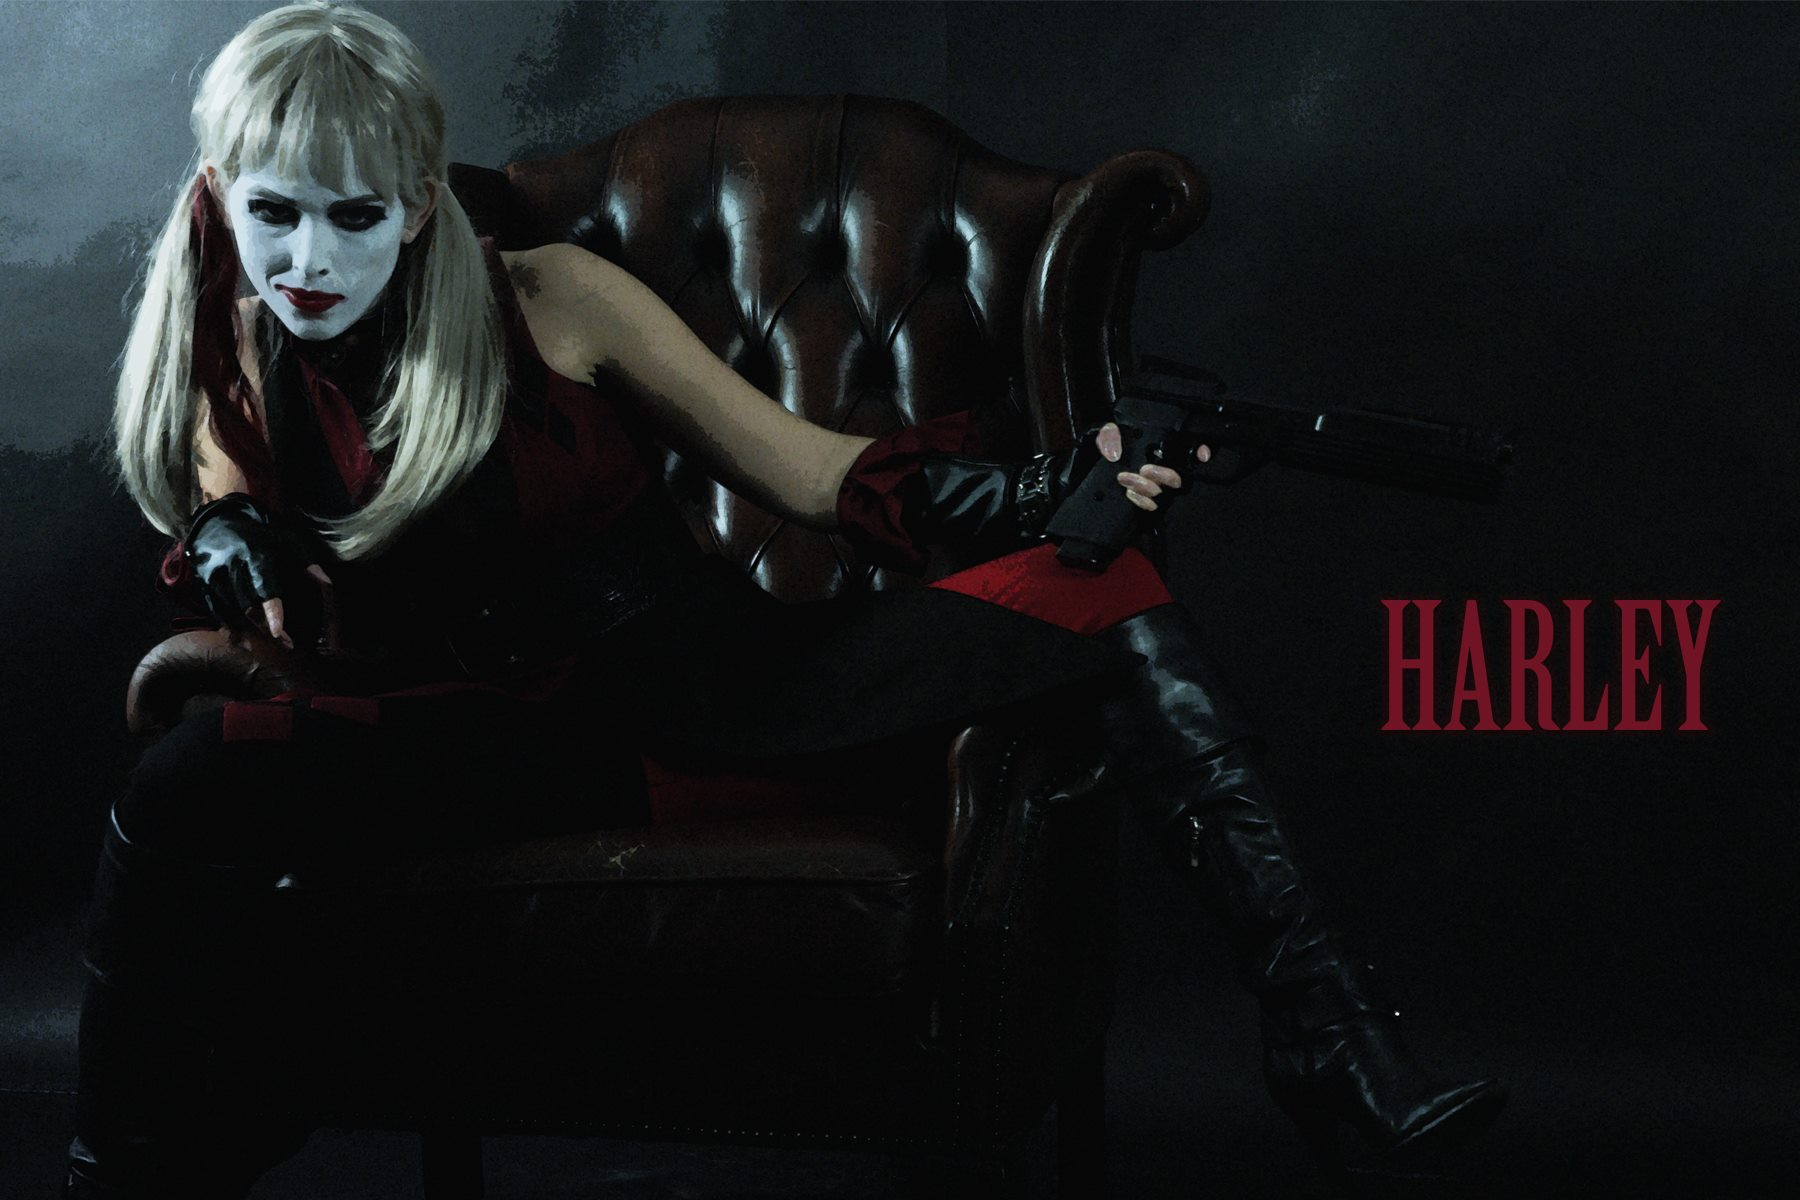 'Harley' short film photoshoot by CRO Productions, 2015